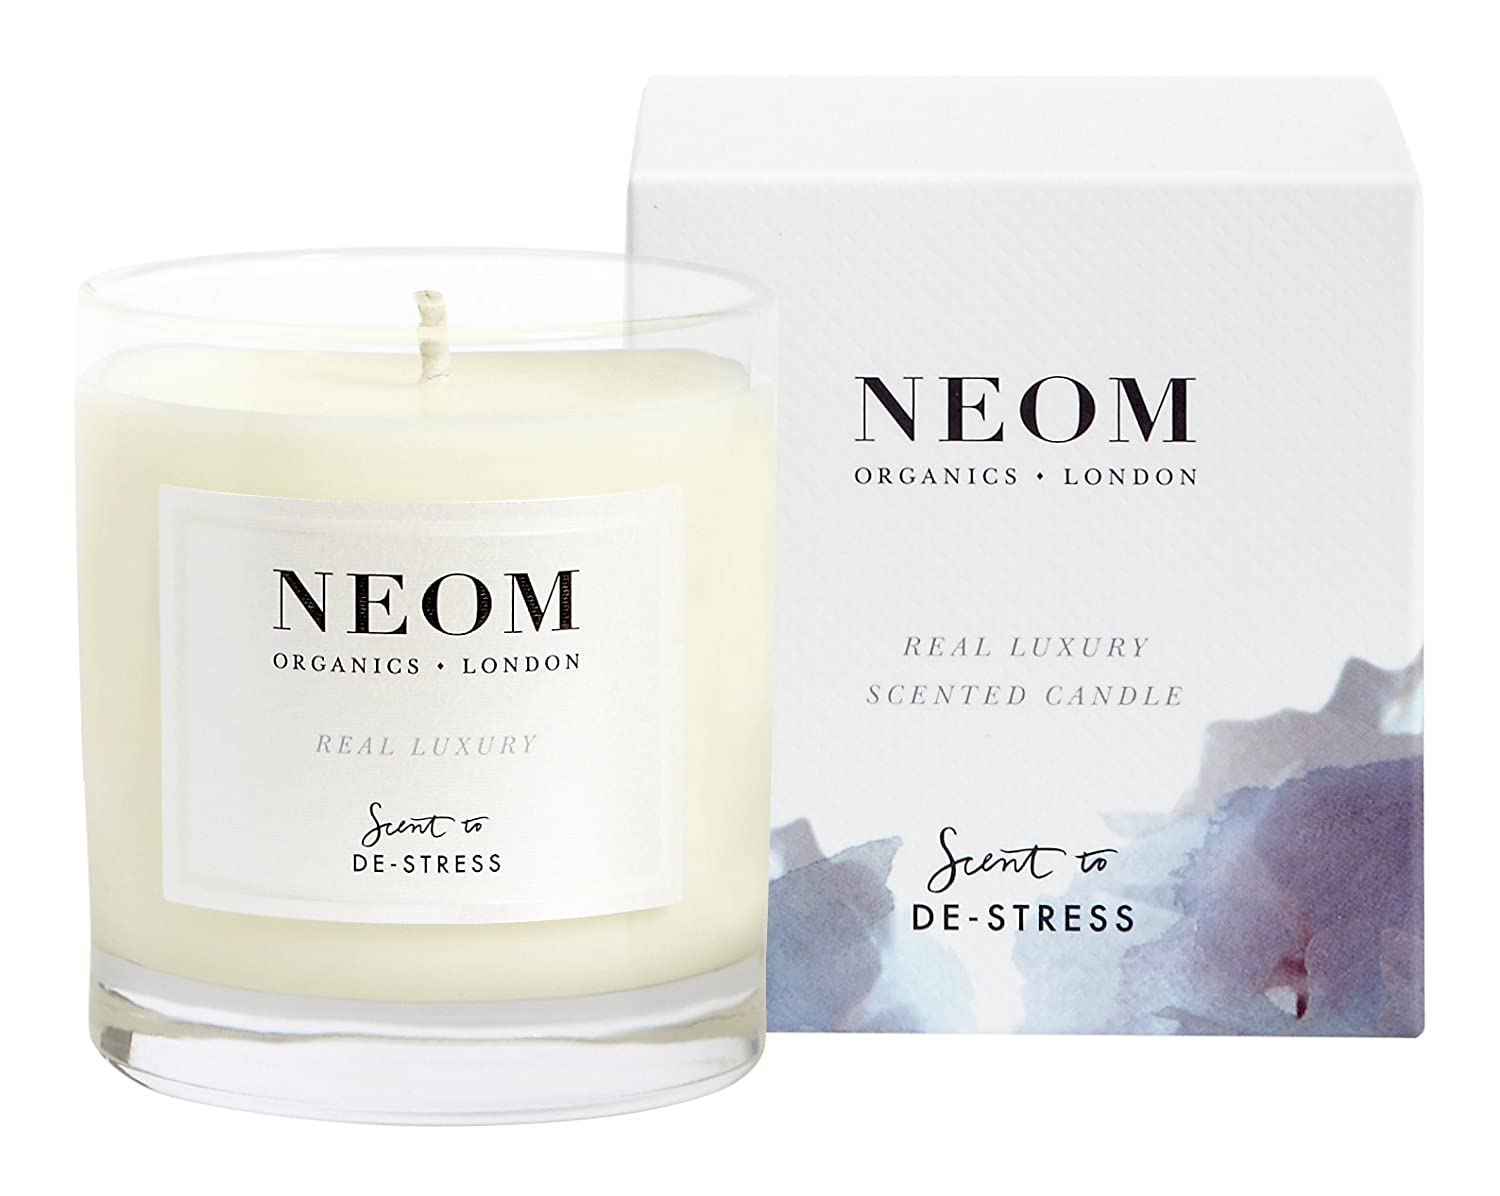 Neom Organics London Real Luxury Scented Candle 1101173